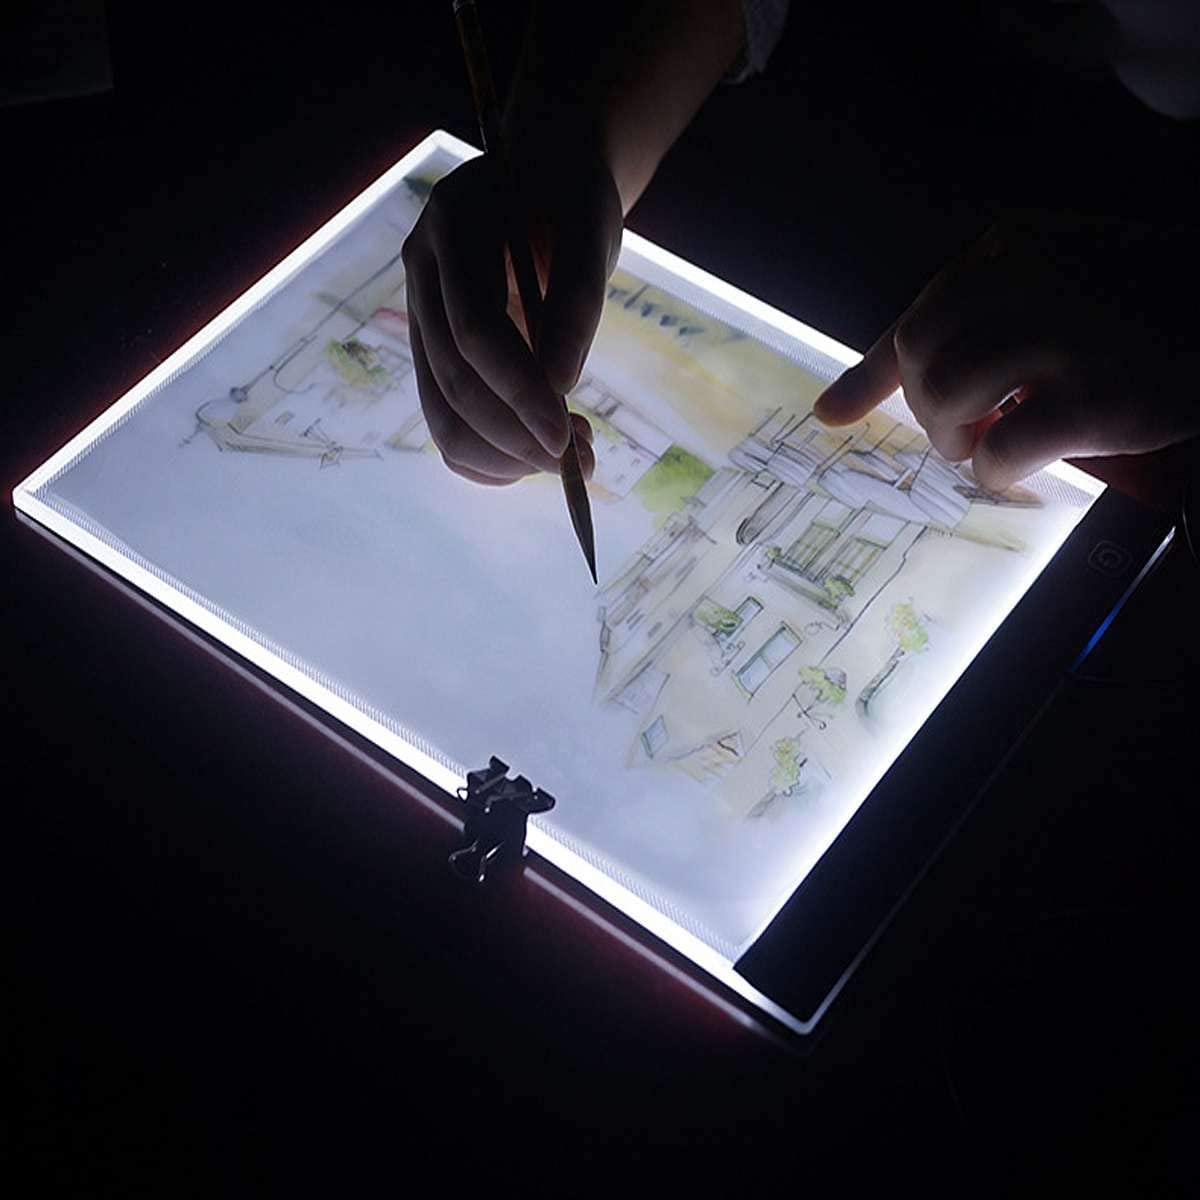 A4 Light Box Adjustable Brightness Light Pad LED Light Board with USB Cable for Diamond Painting Sketching Animation X-RAY Light Drawing